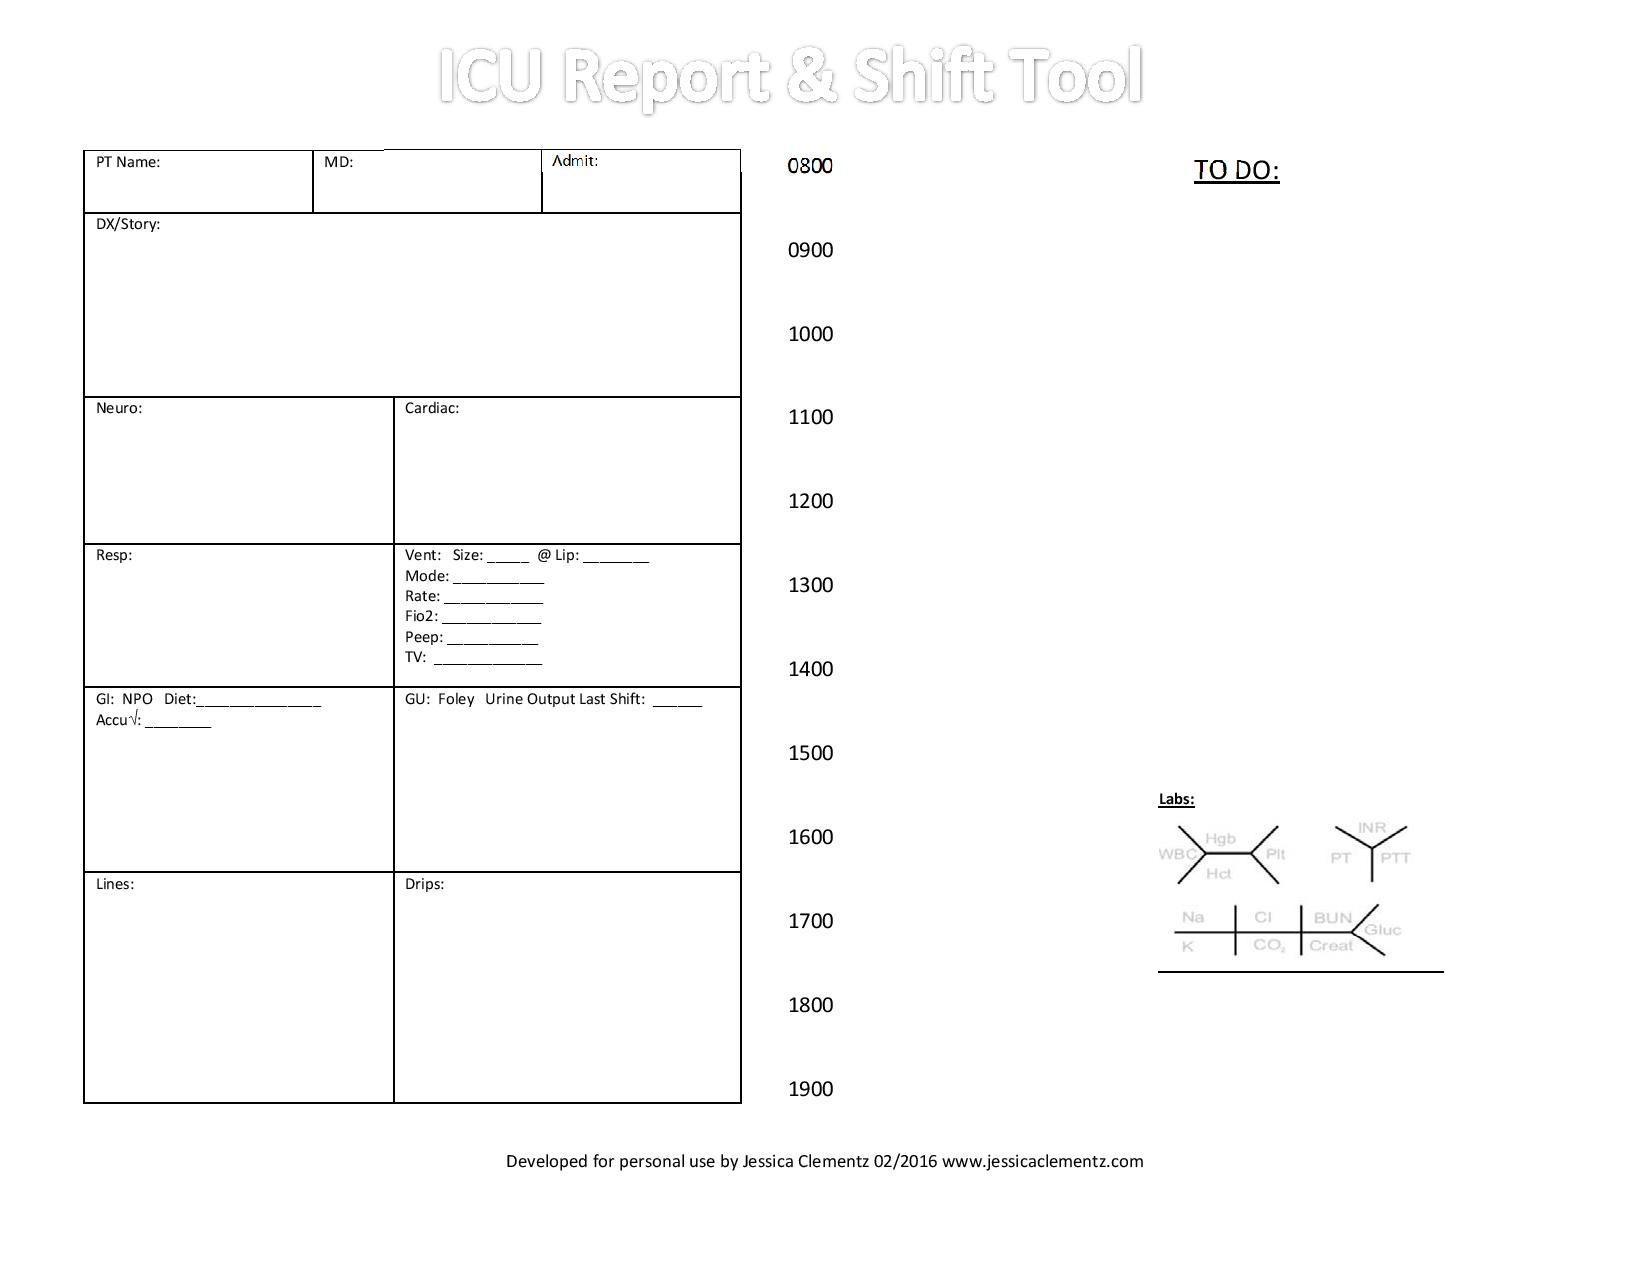 Nurse Brain Sheet – Icu Report And Shift Tool | Nursing Intended For Icu Report Template